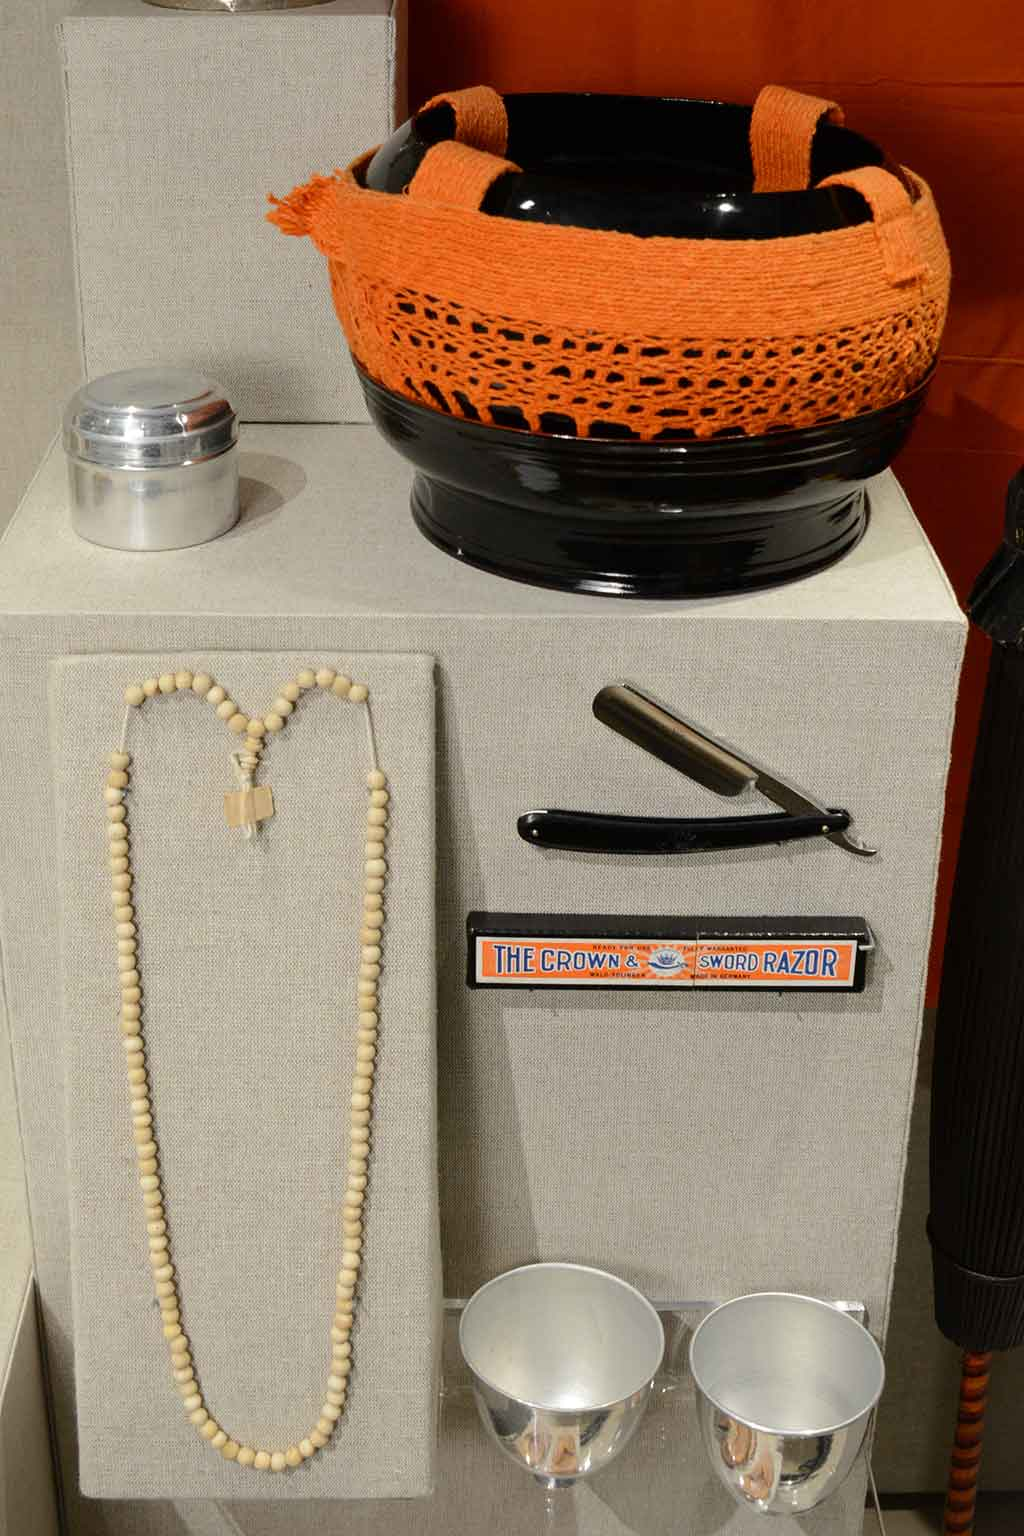 beads, a razor, and various containers on exhibit